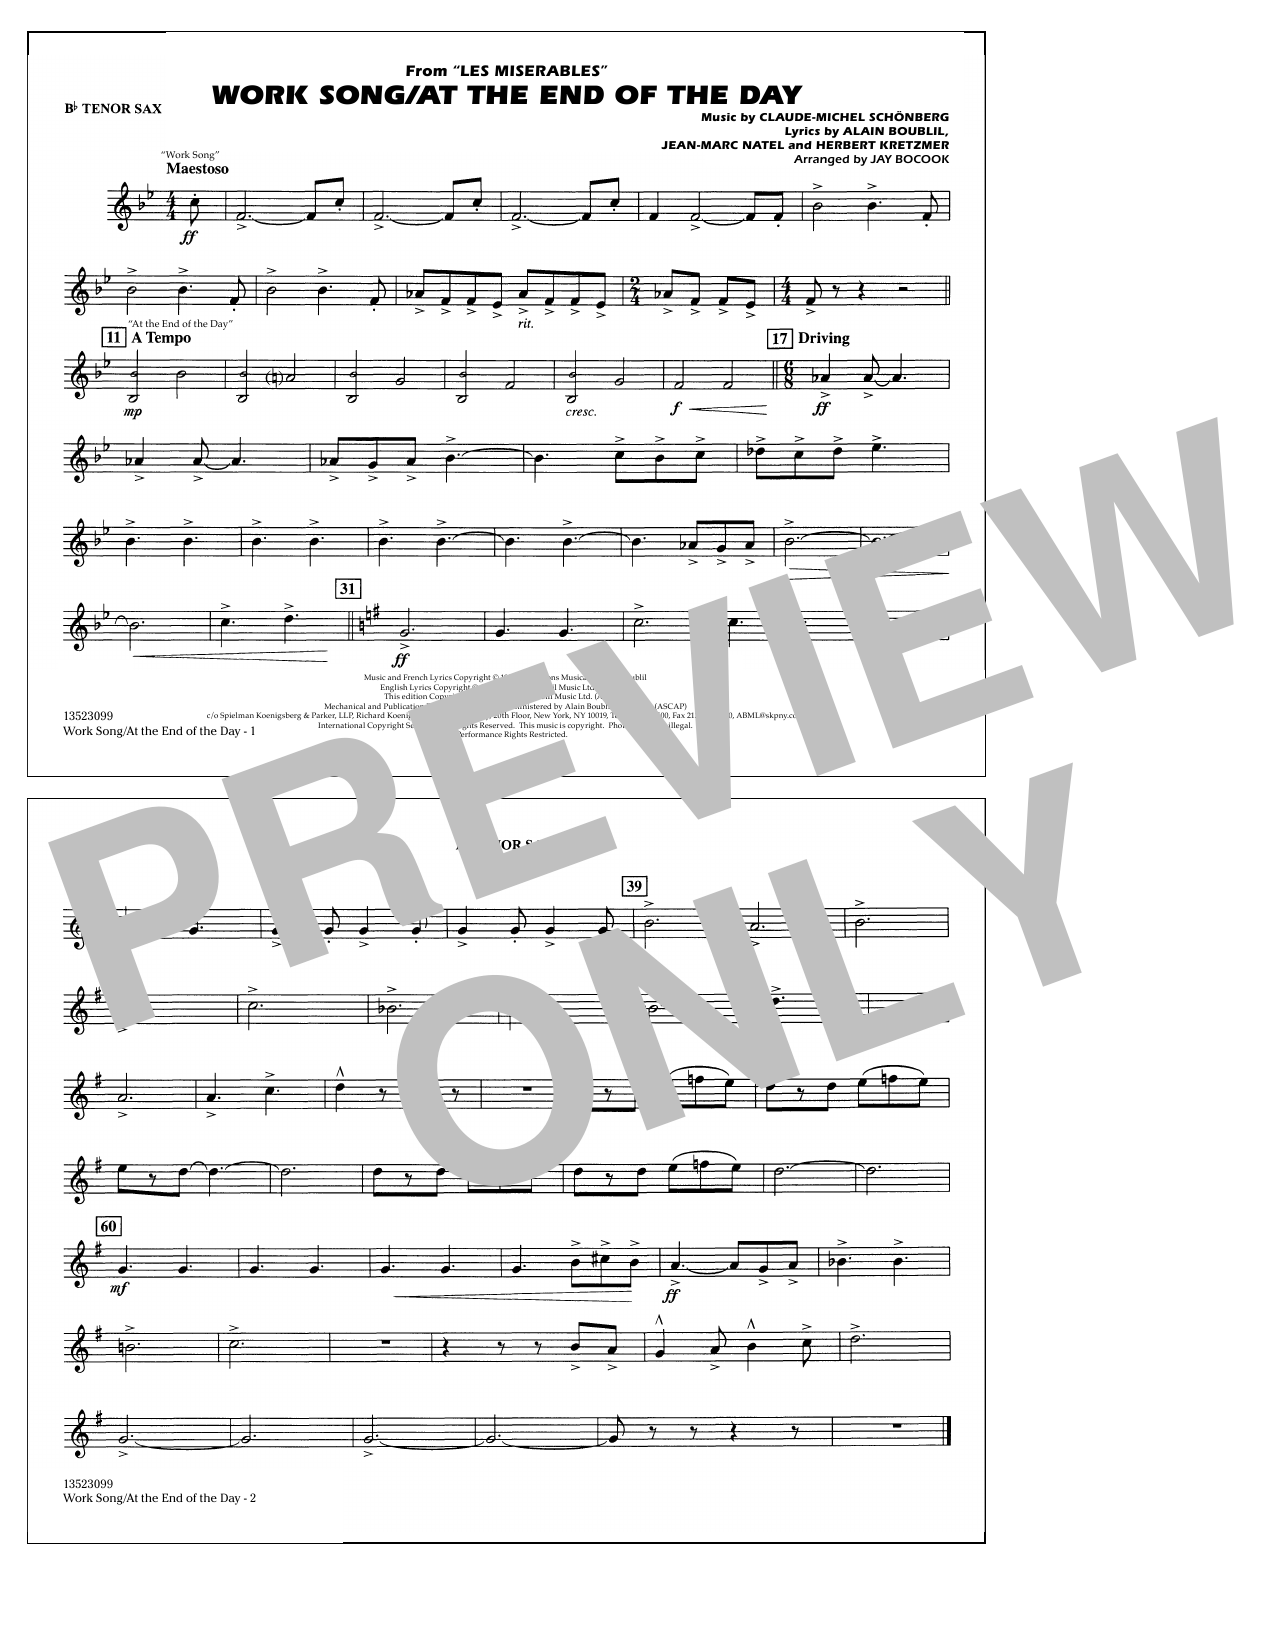 Work Song/At the End of the Day (Les Misérables) (arr. Jay Bocook) - Bb Tenor Sax (Marching Band)